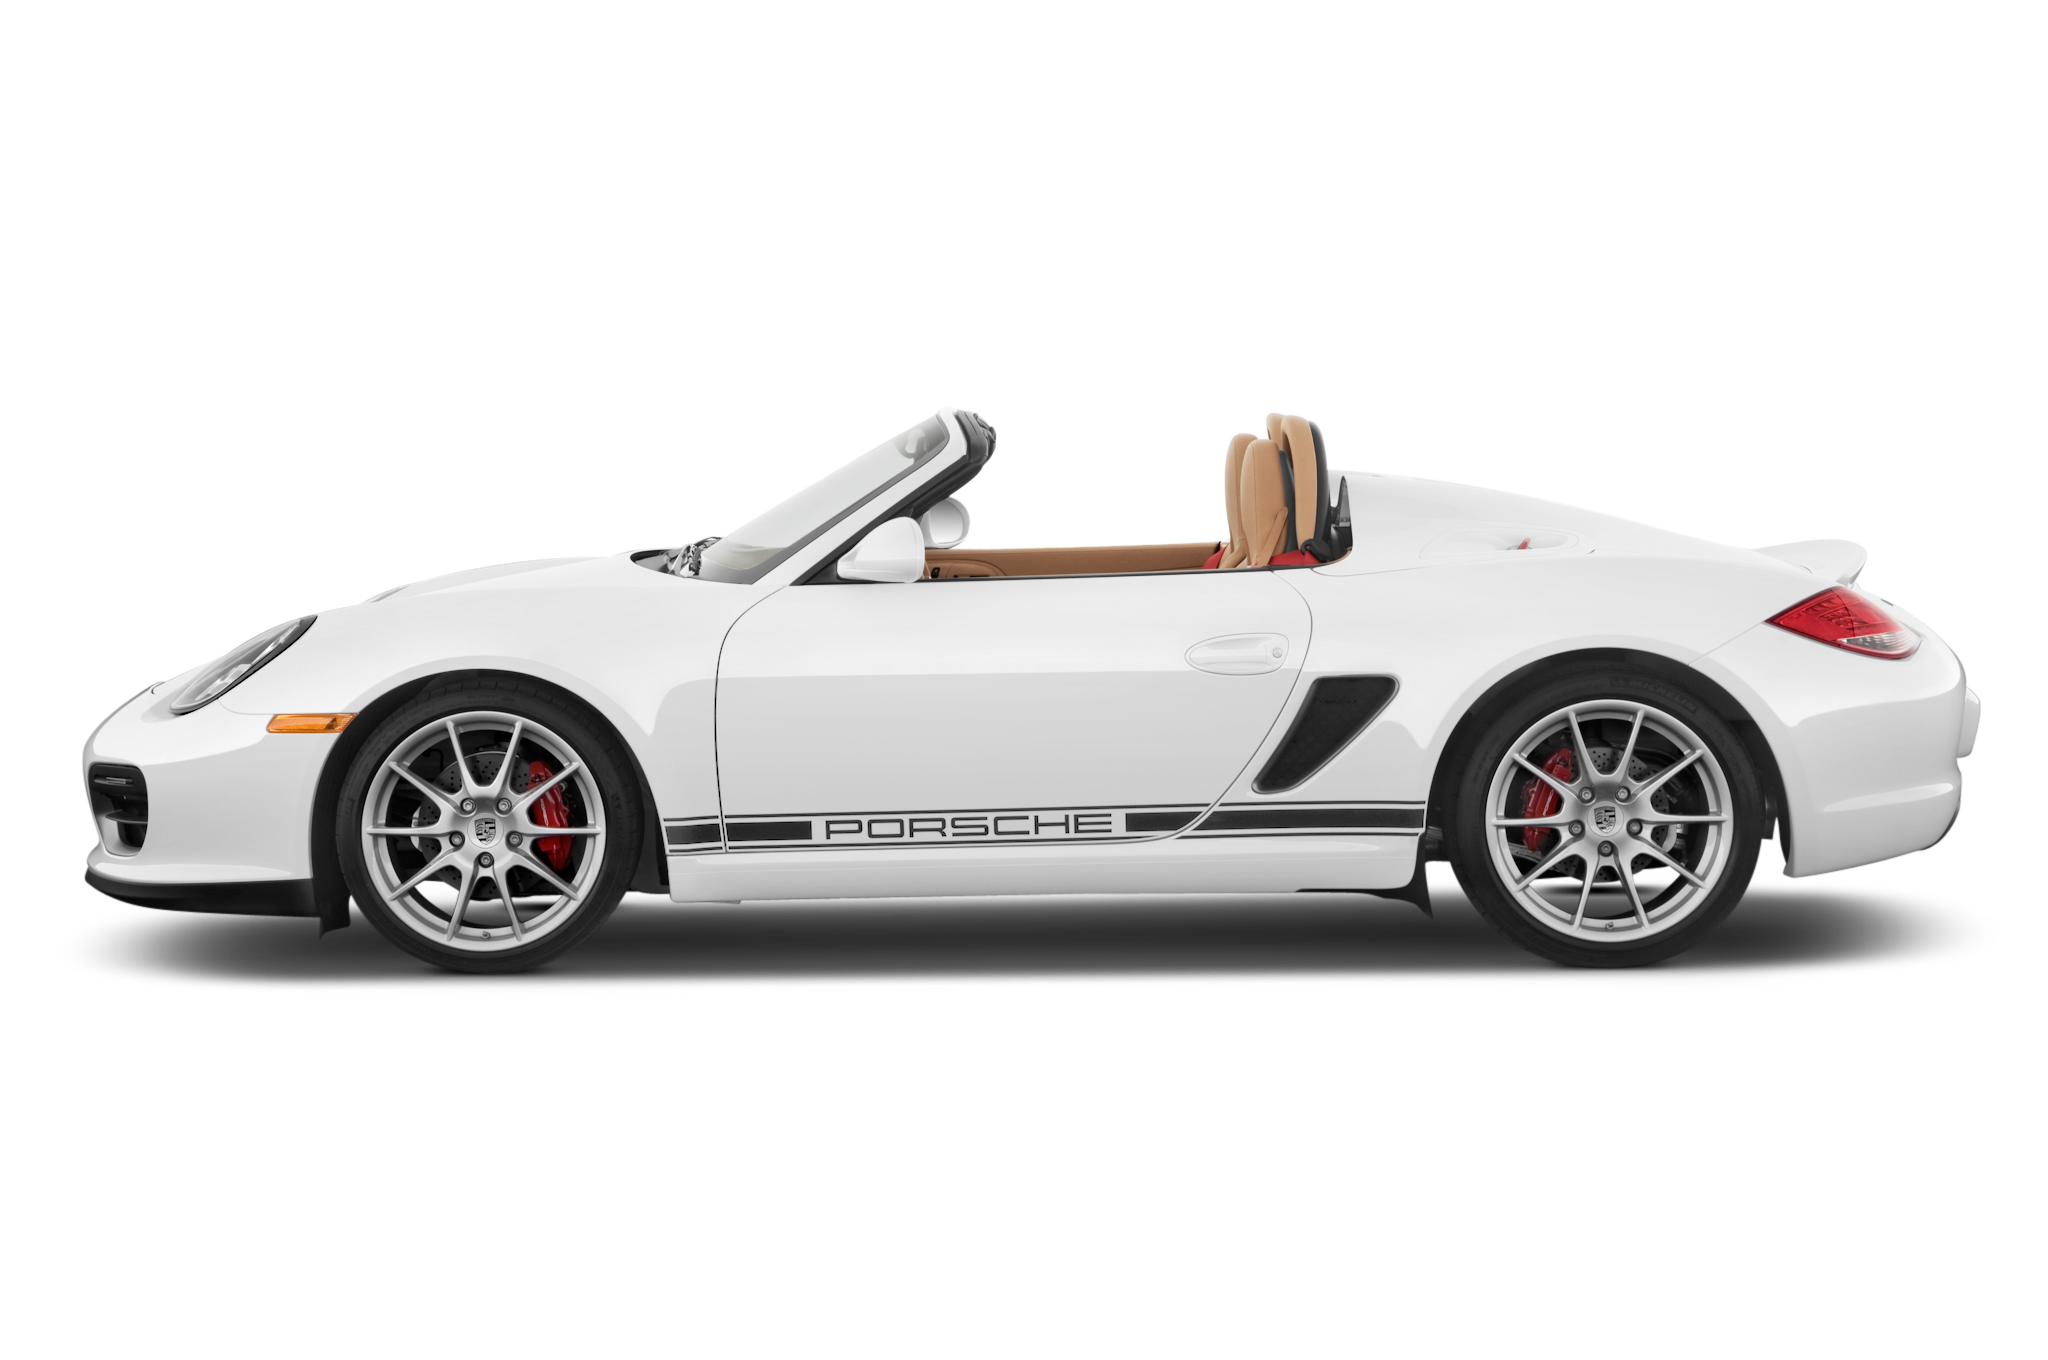 Porsche vector side view. Unveils the boxster spyder